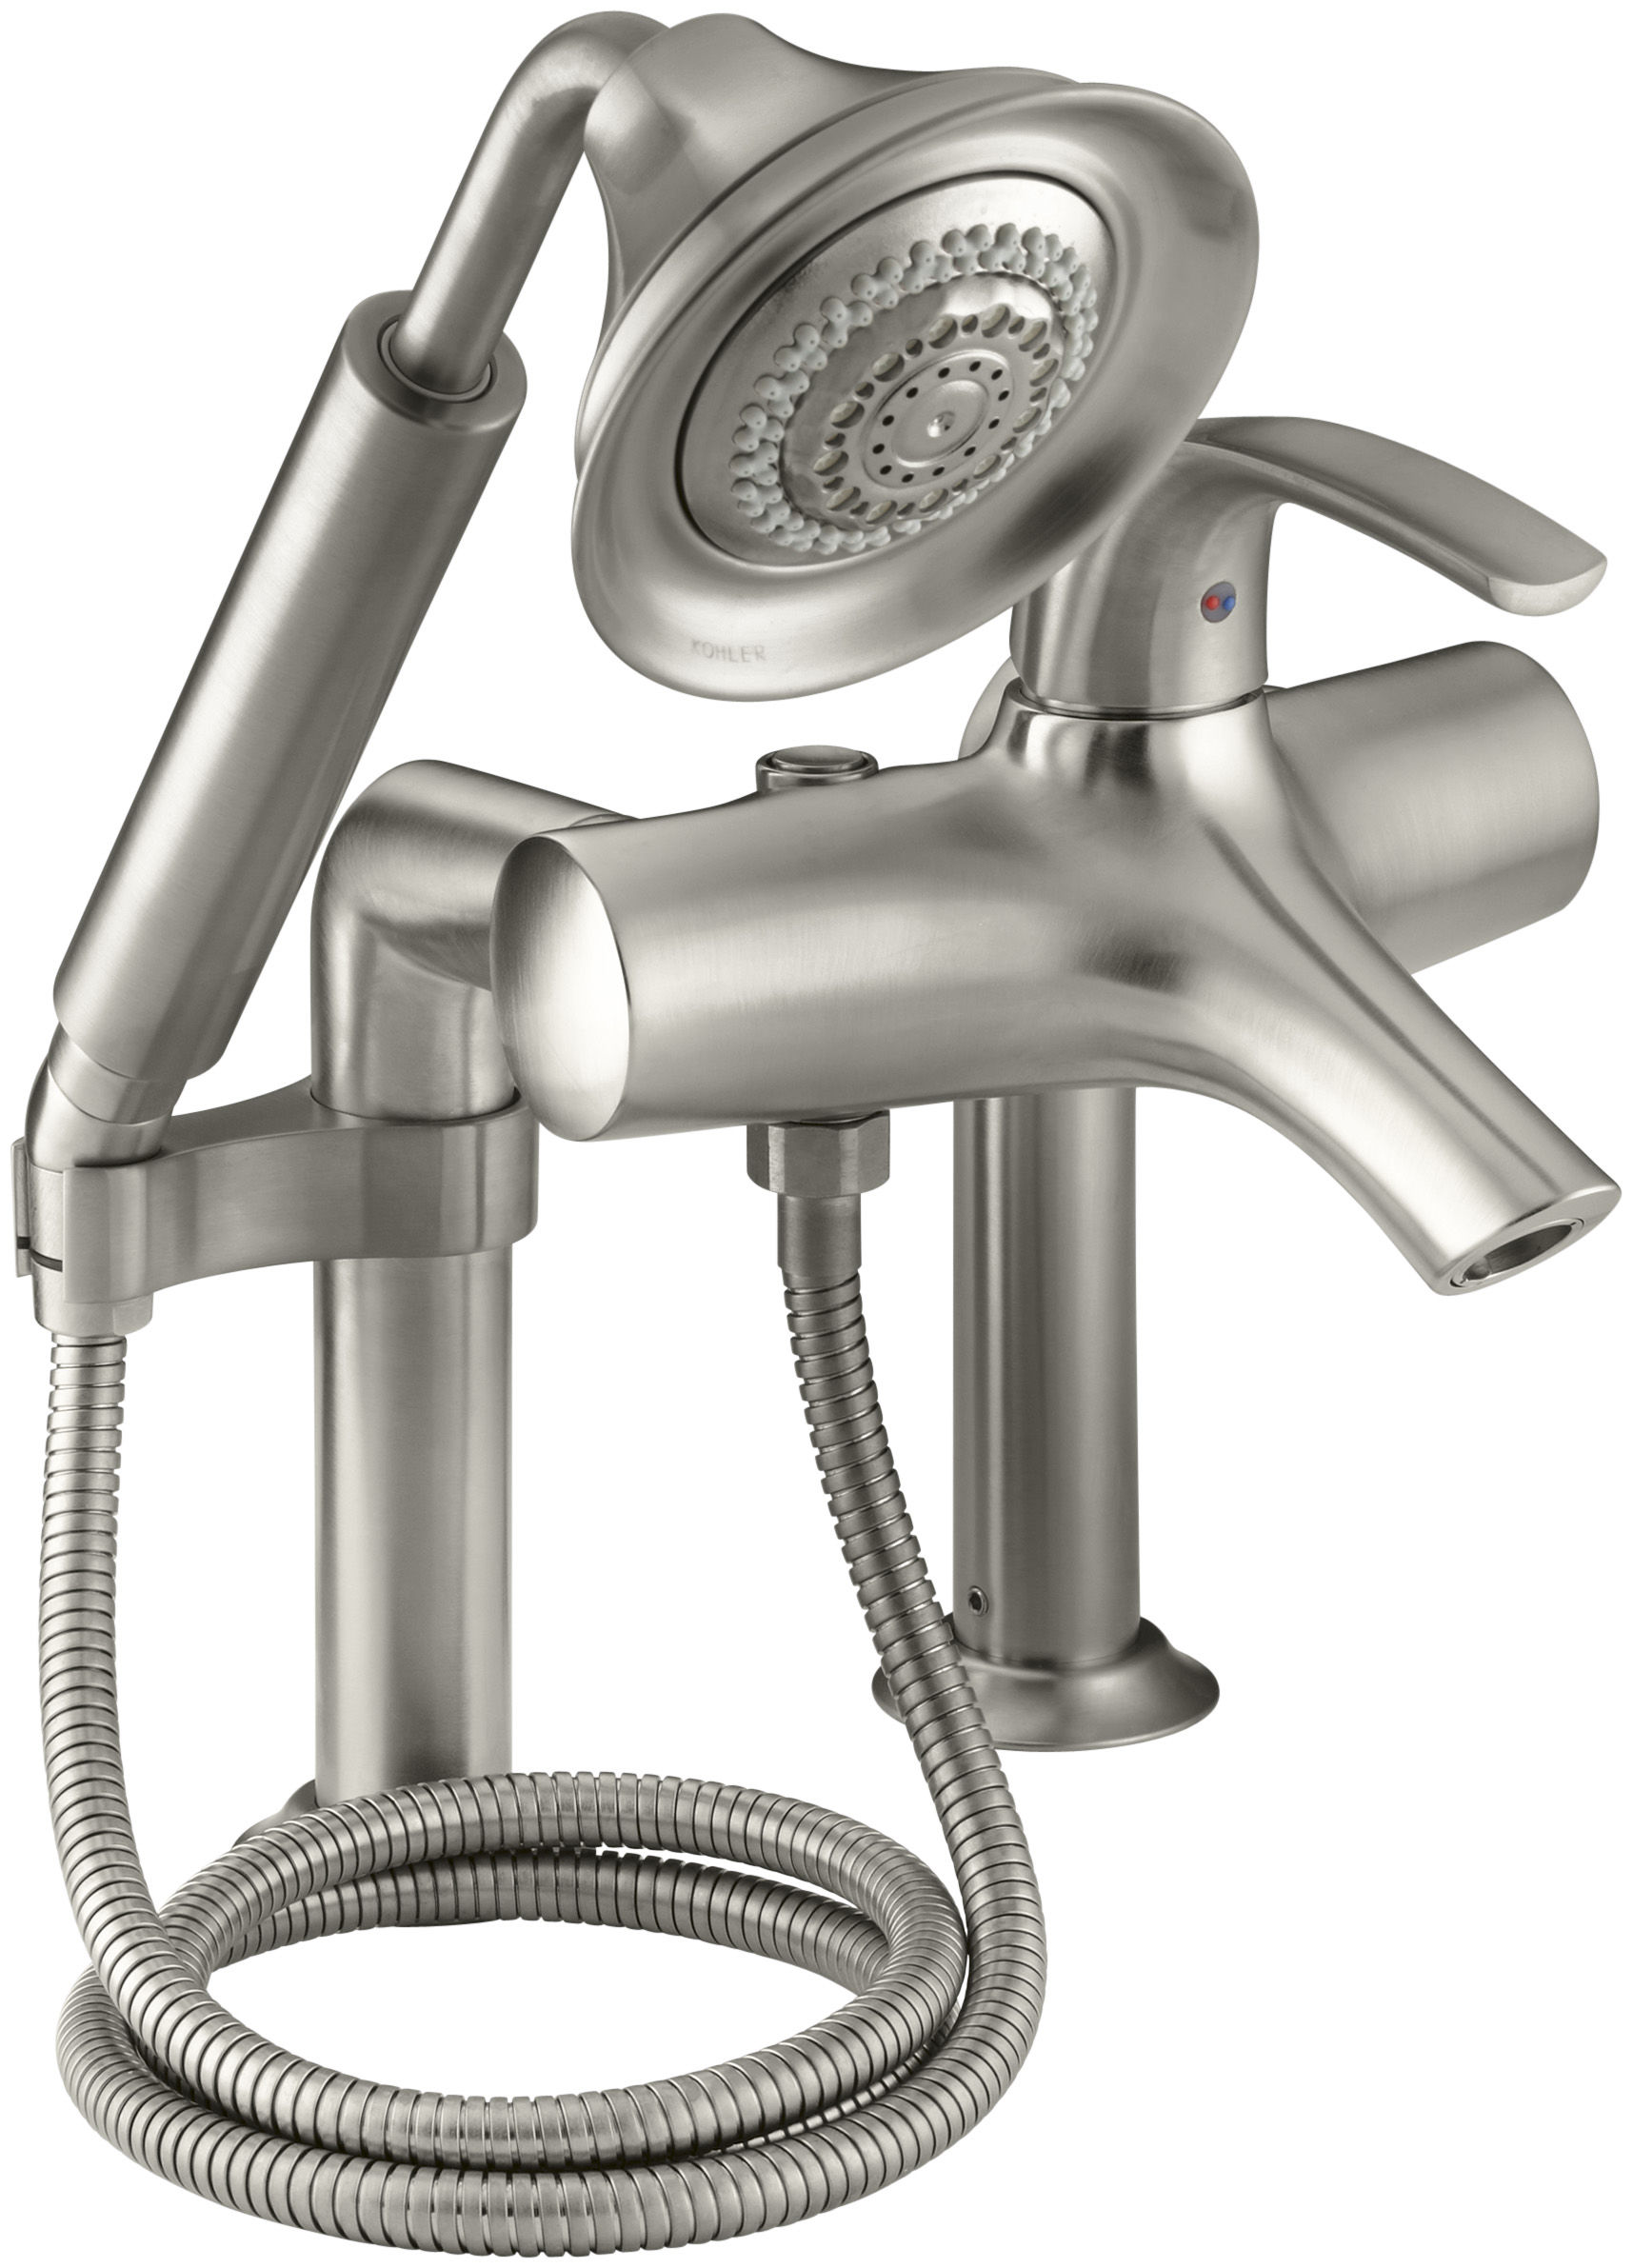 kohler roman tub faucet with hand shower. Kohler K 18486 4 CP Polished Chrome Single Handle Roman Tub Faucet with  Metal Lever and Handshower from the Symbol Series com